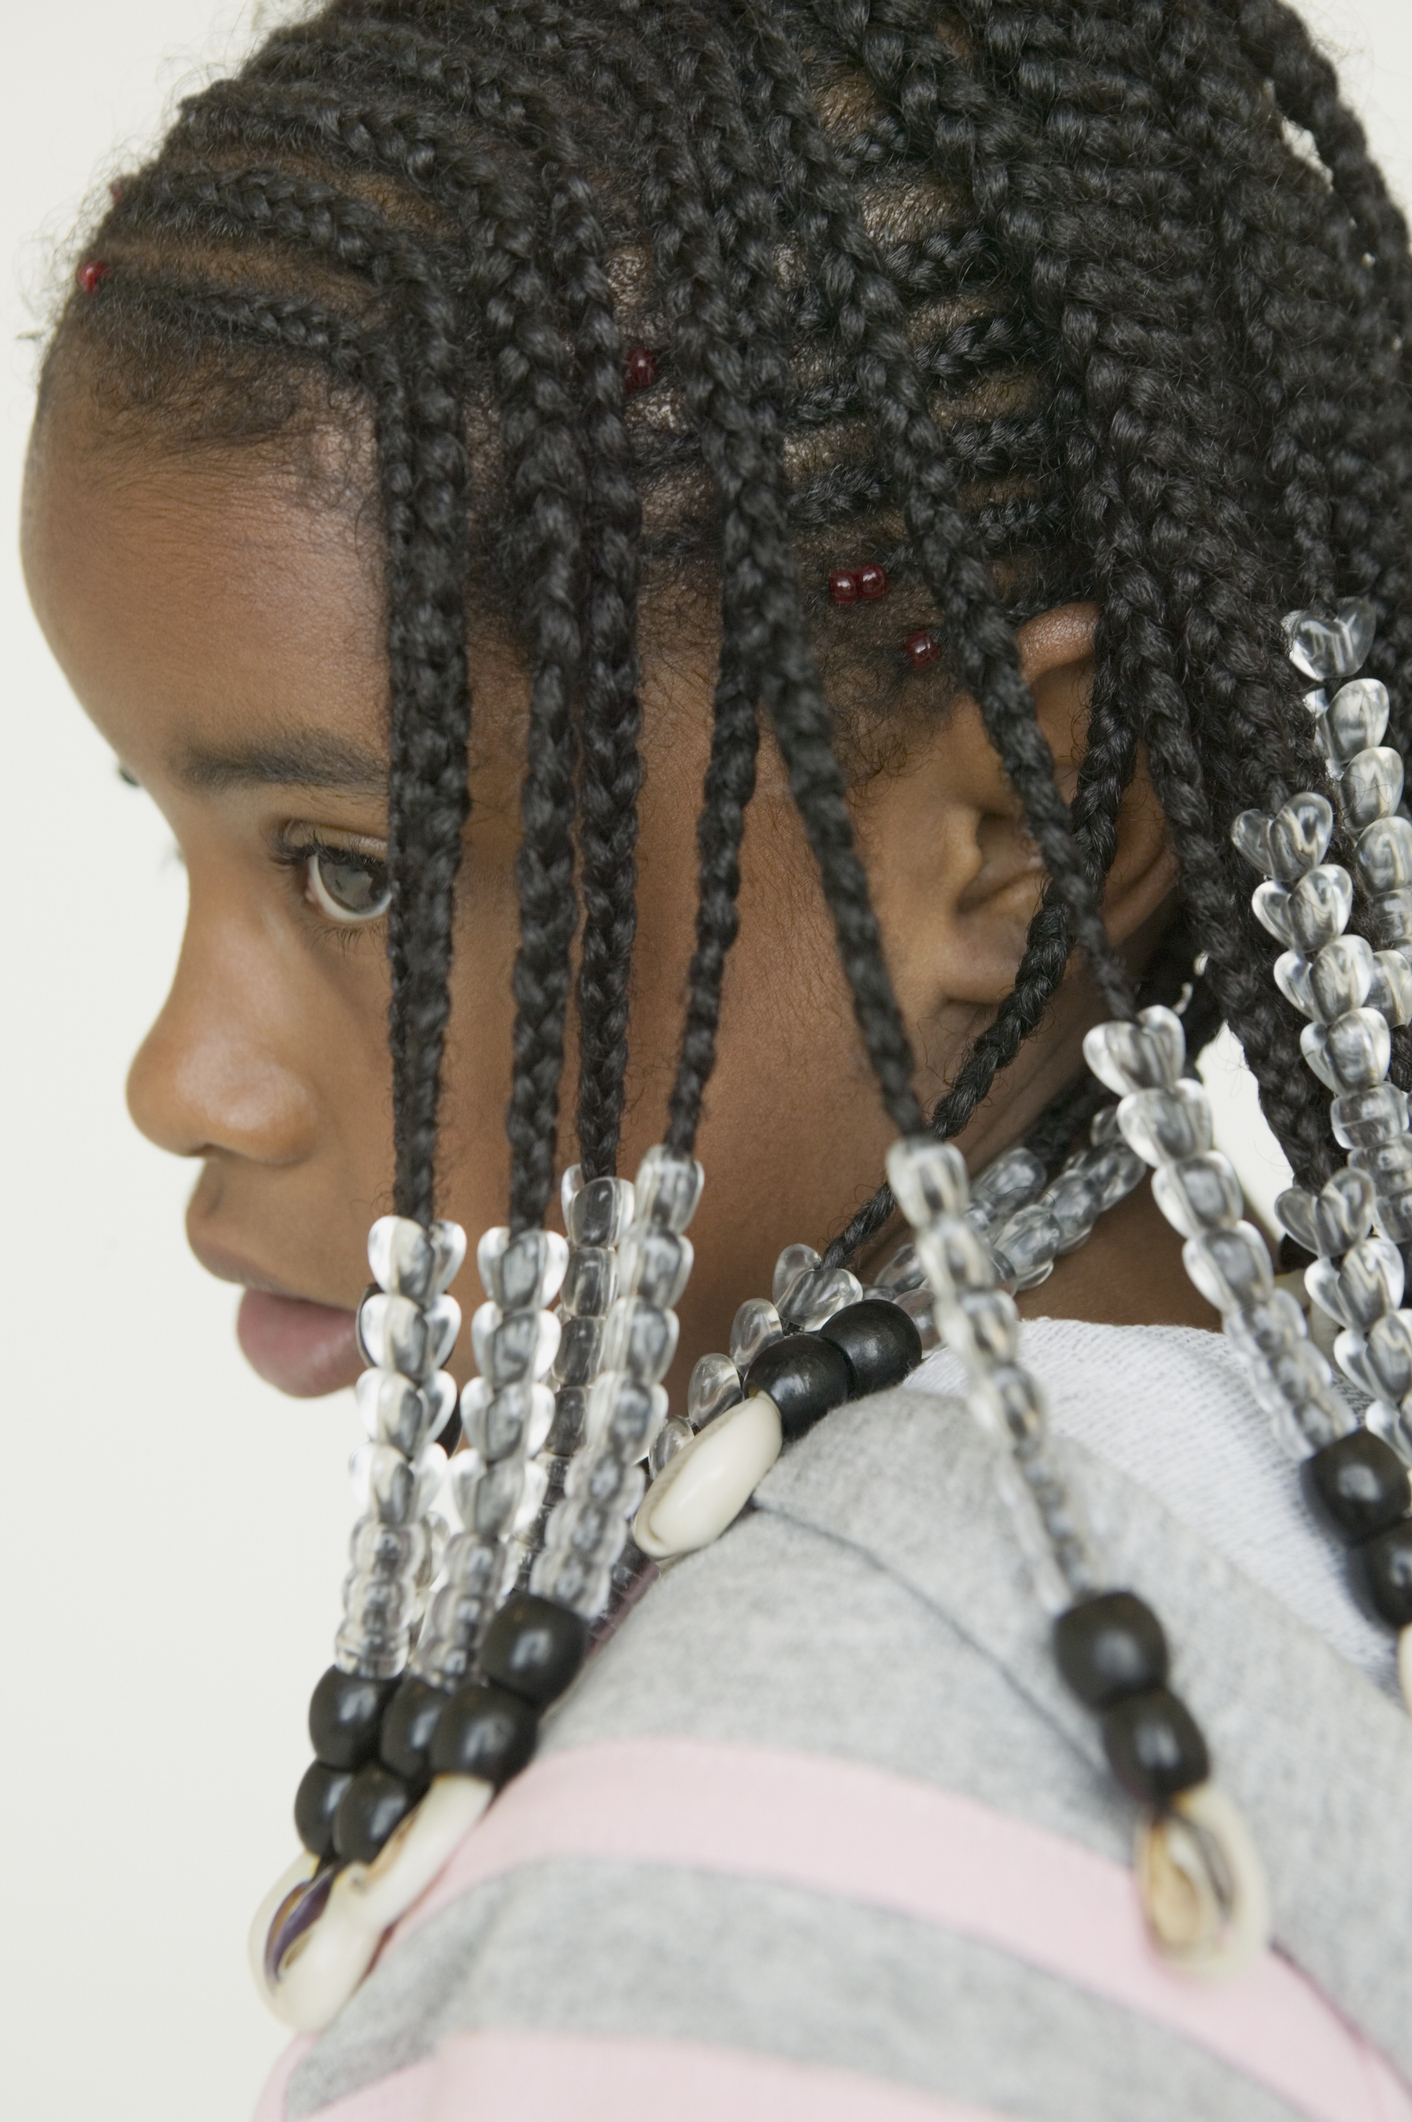 Close up of African girl with braids